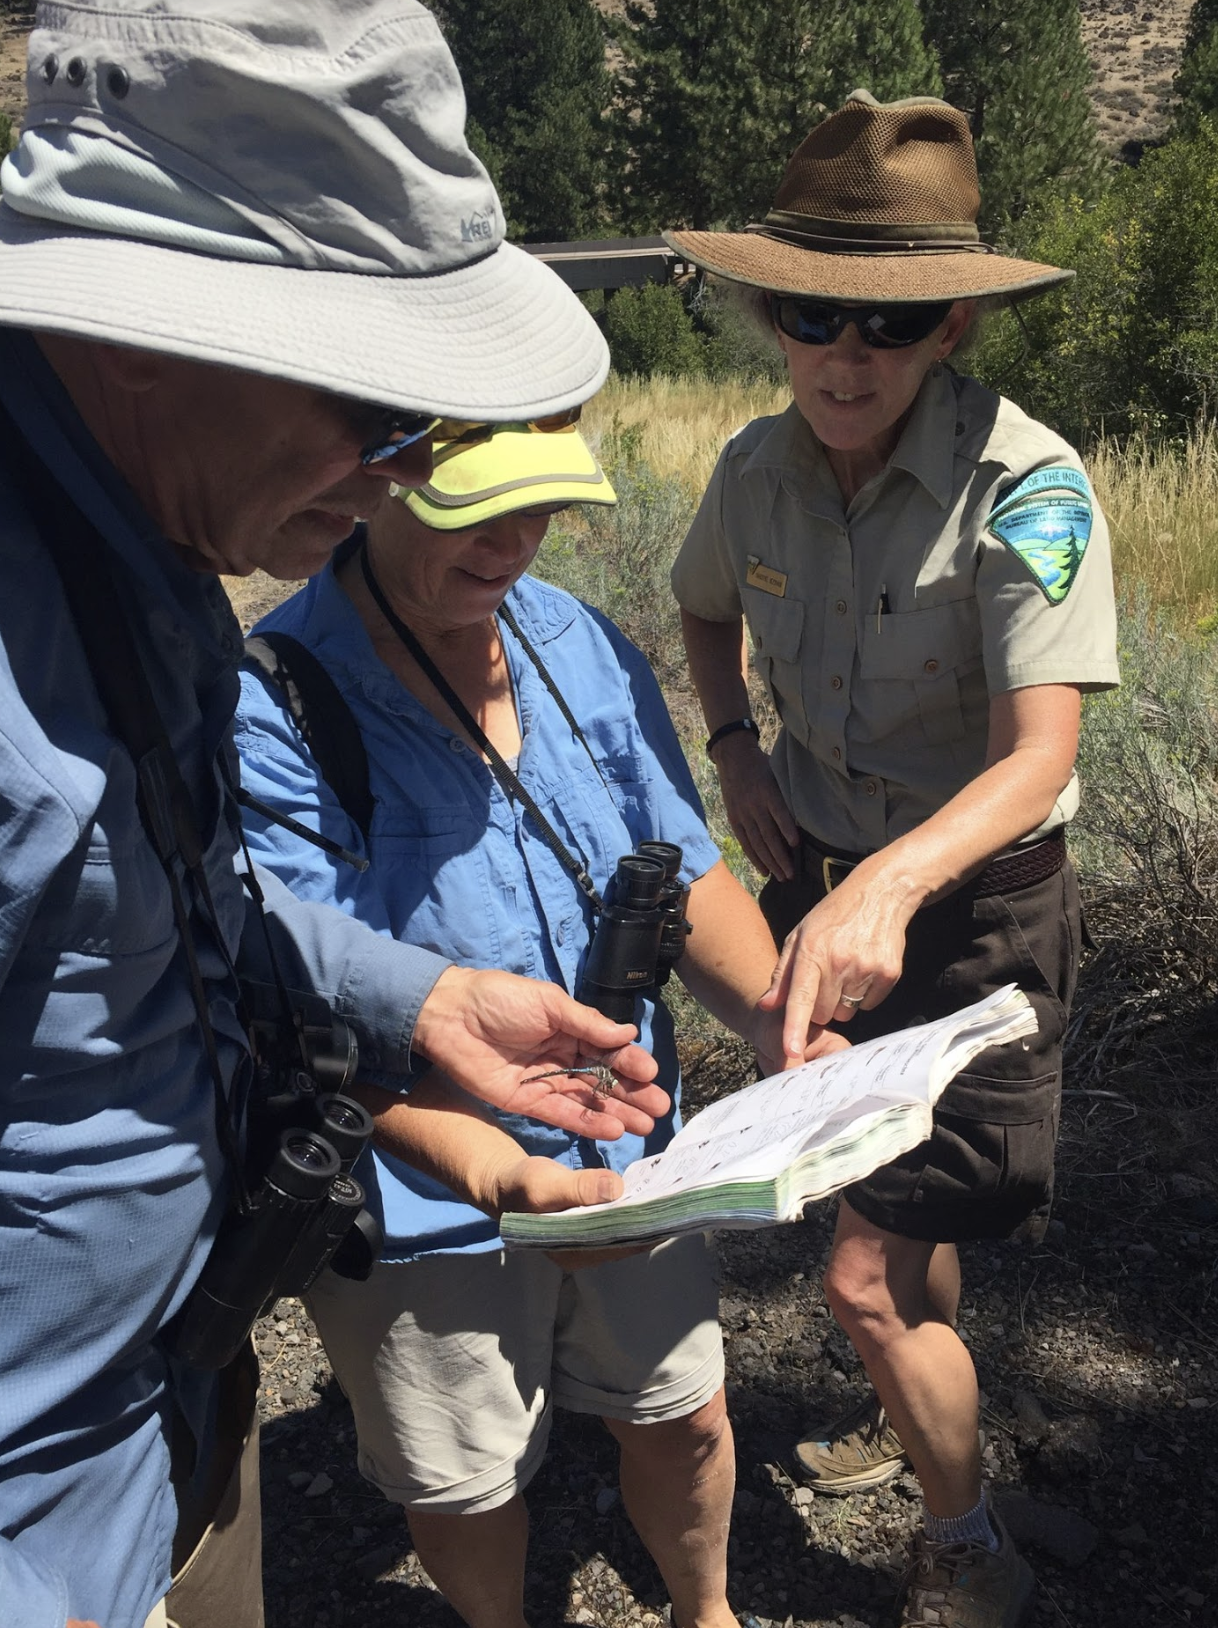 Participants partnered with expert leaders and Cascade-Siskiyou NM staff to identify dragonflies and damselflies.